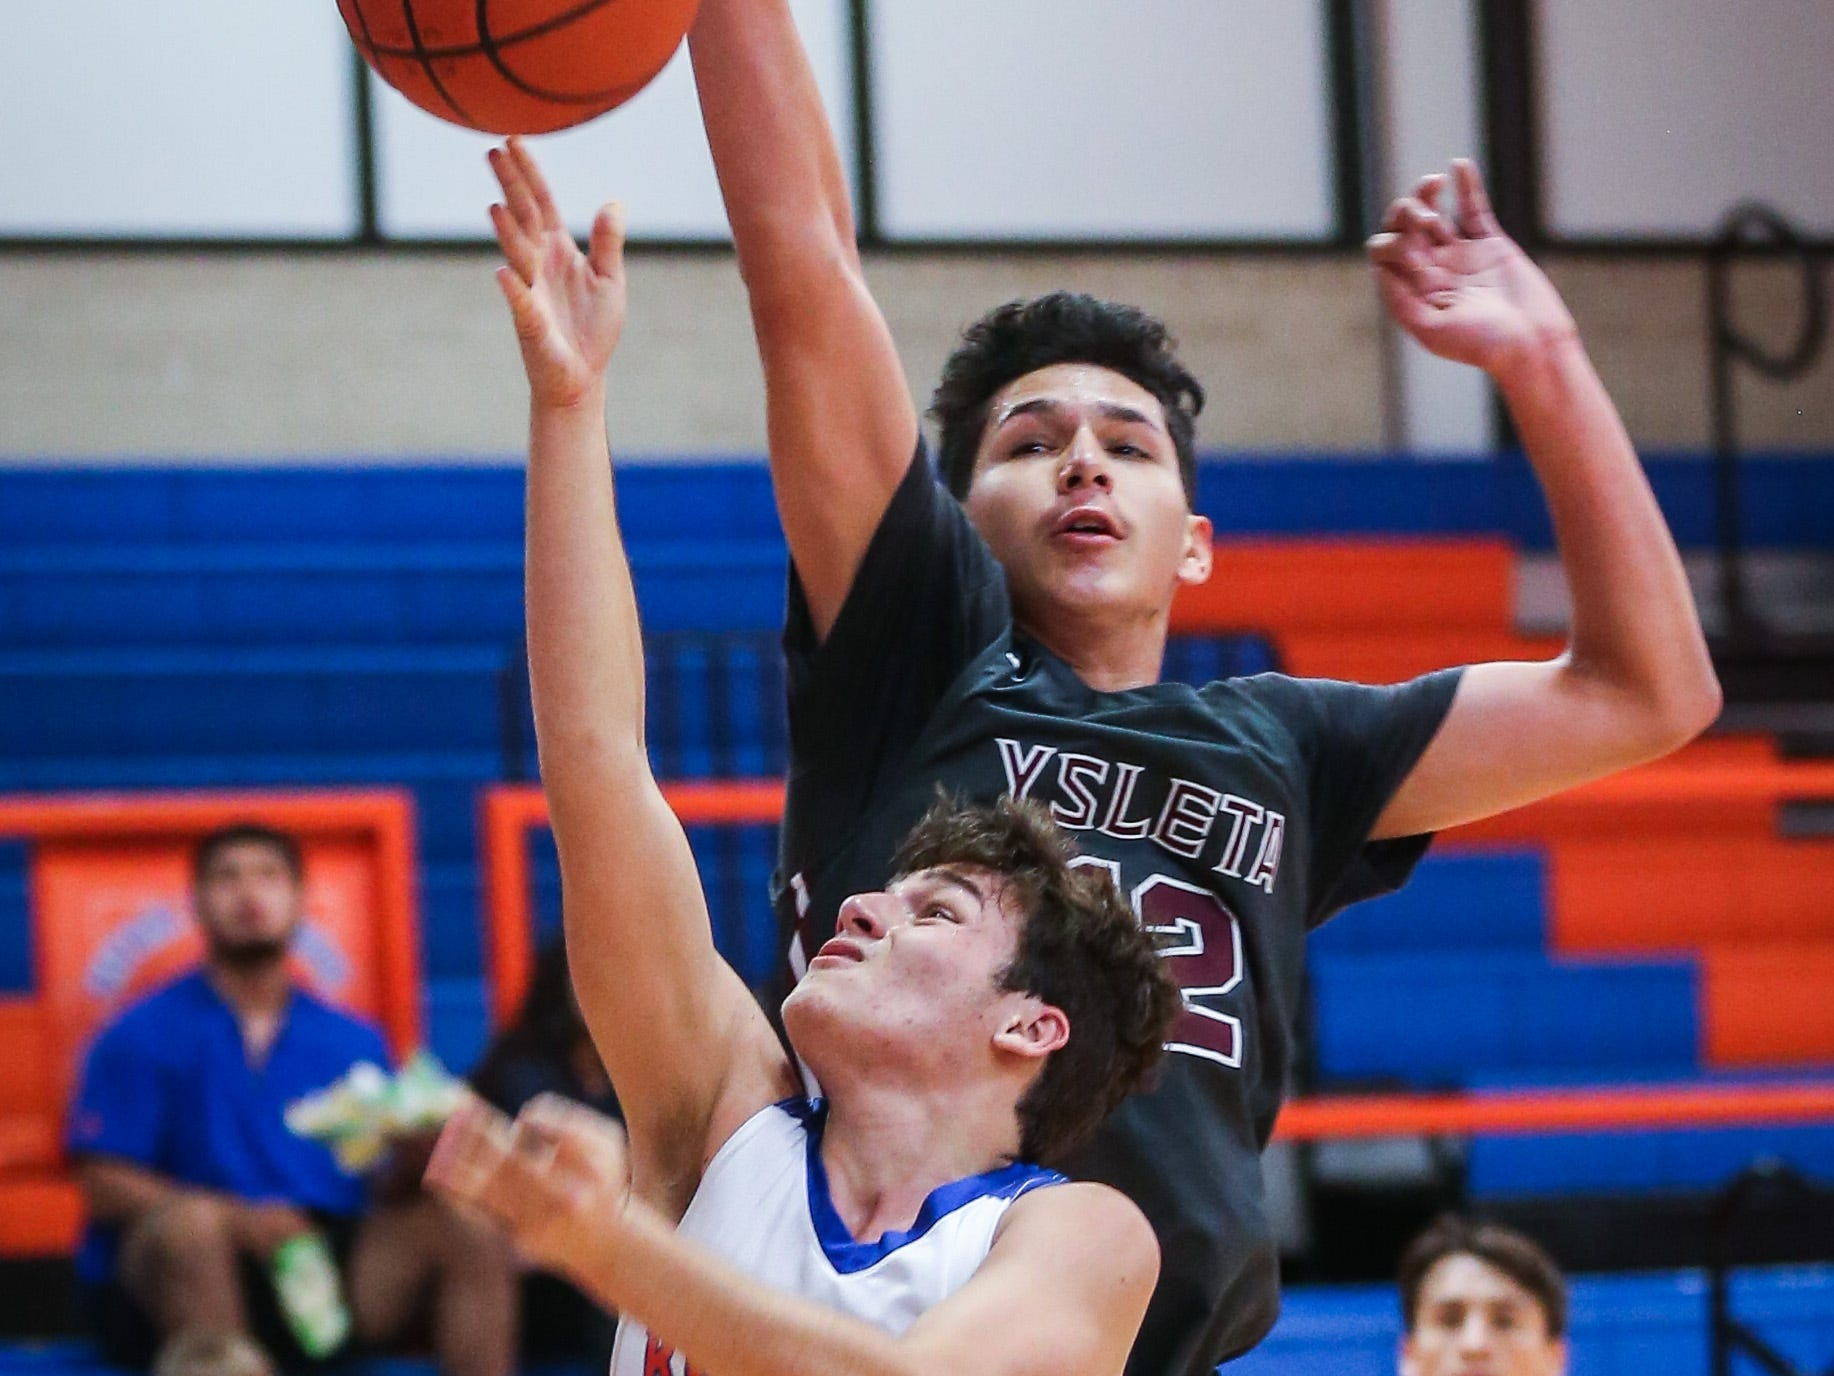 Central's Jaison Duarte attempts to shoot the ball as Ysleta blocks during the Doug McCutchen Basketball Tournament Thursday, Nov. 29, 2018, at Central High School.